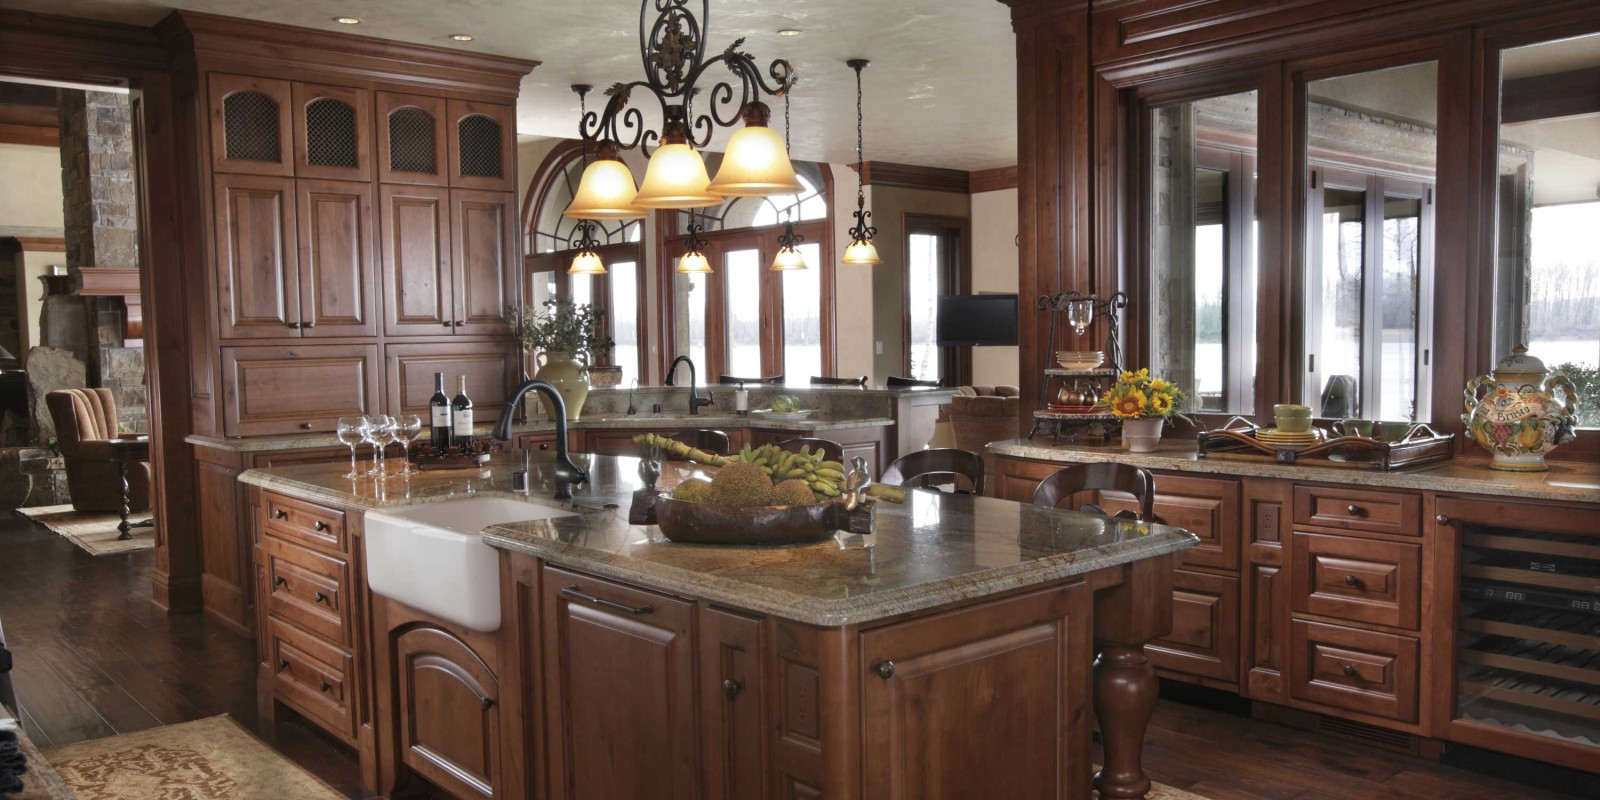 Stone-Kitchen-Counter-big